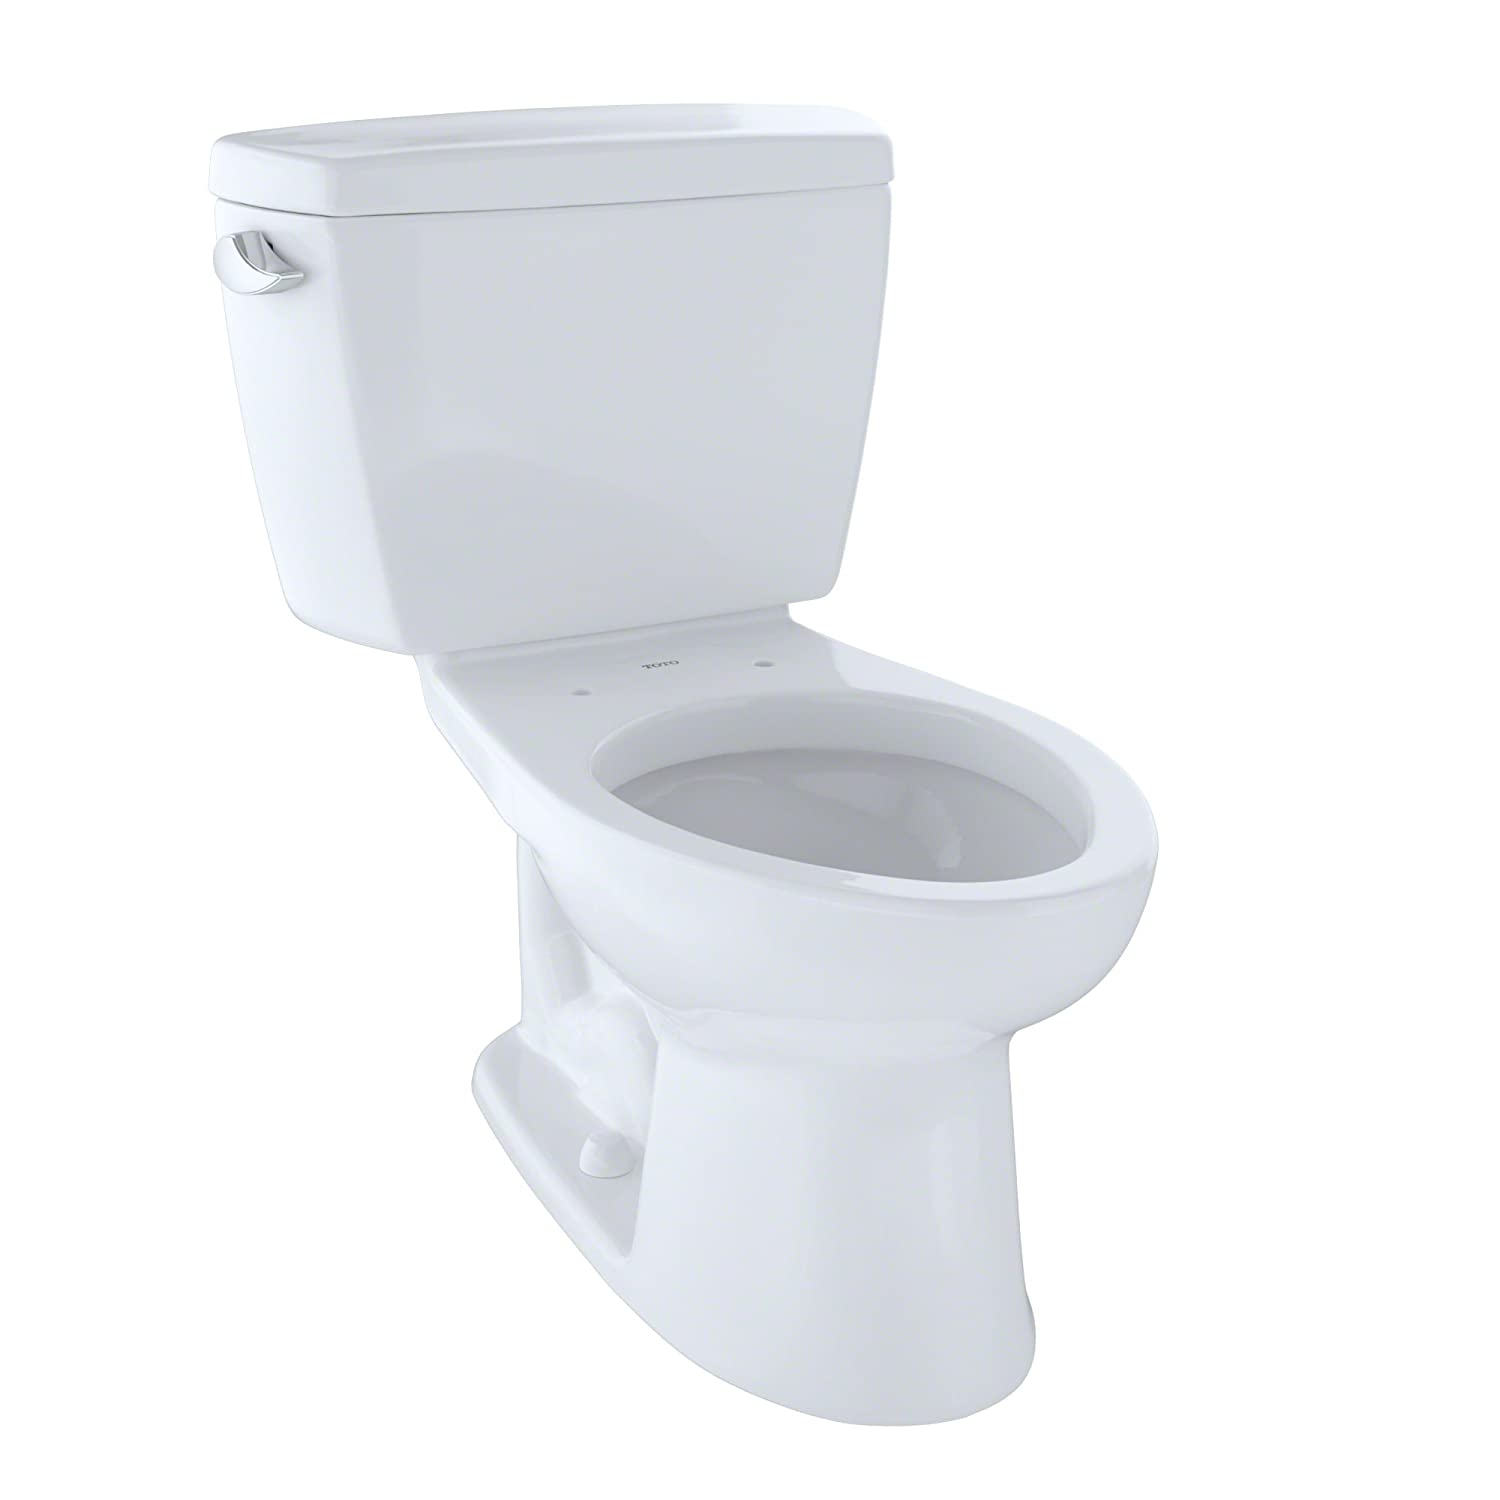 Toilet Bowls Amazon